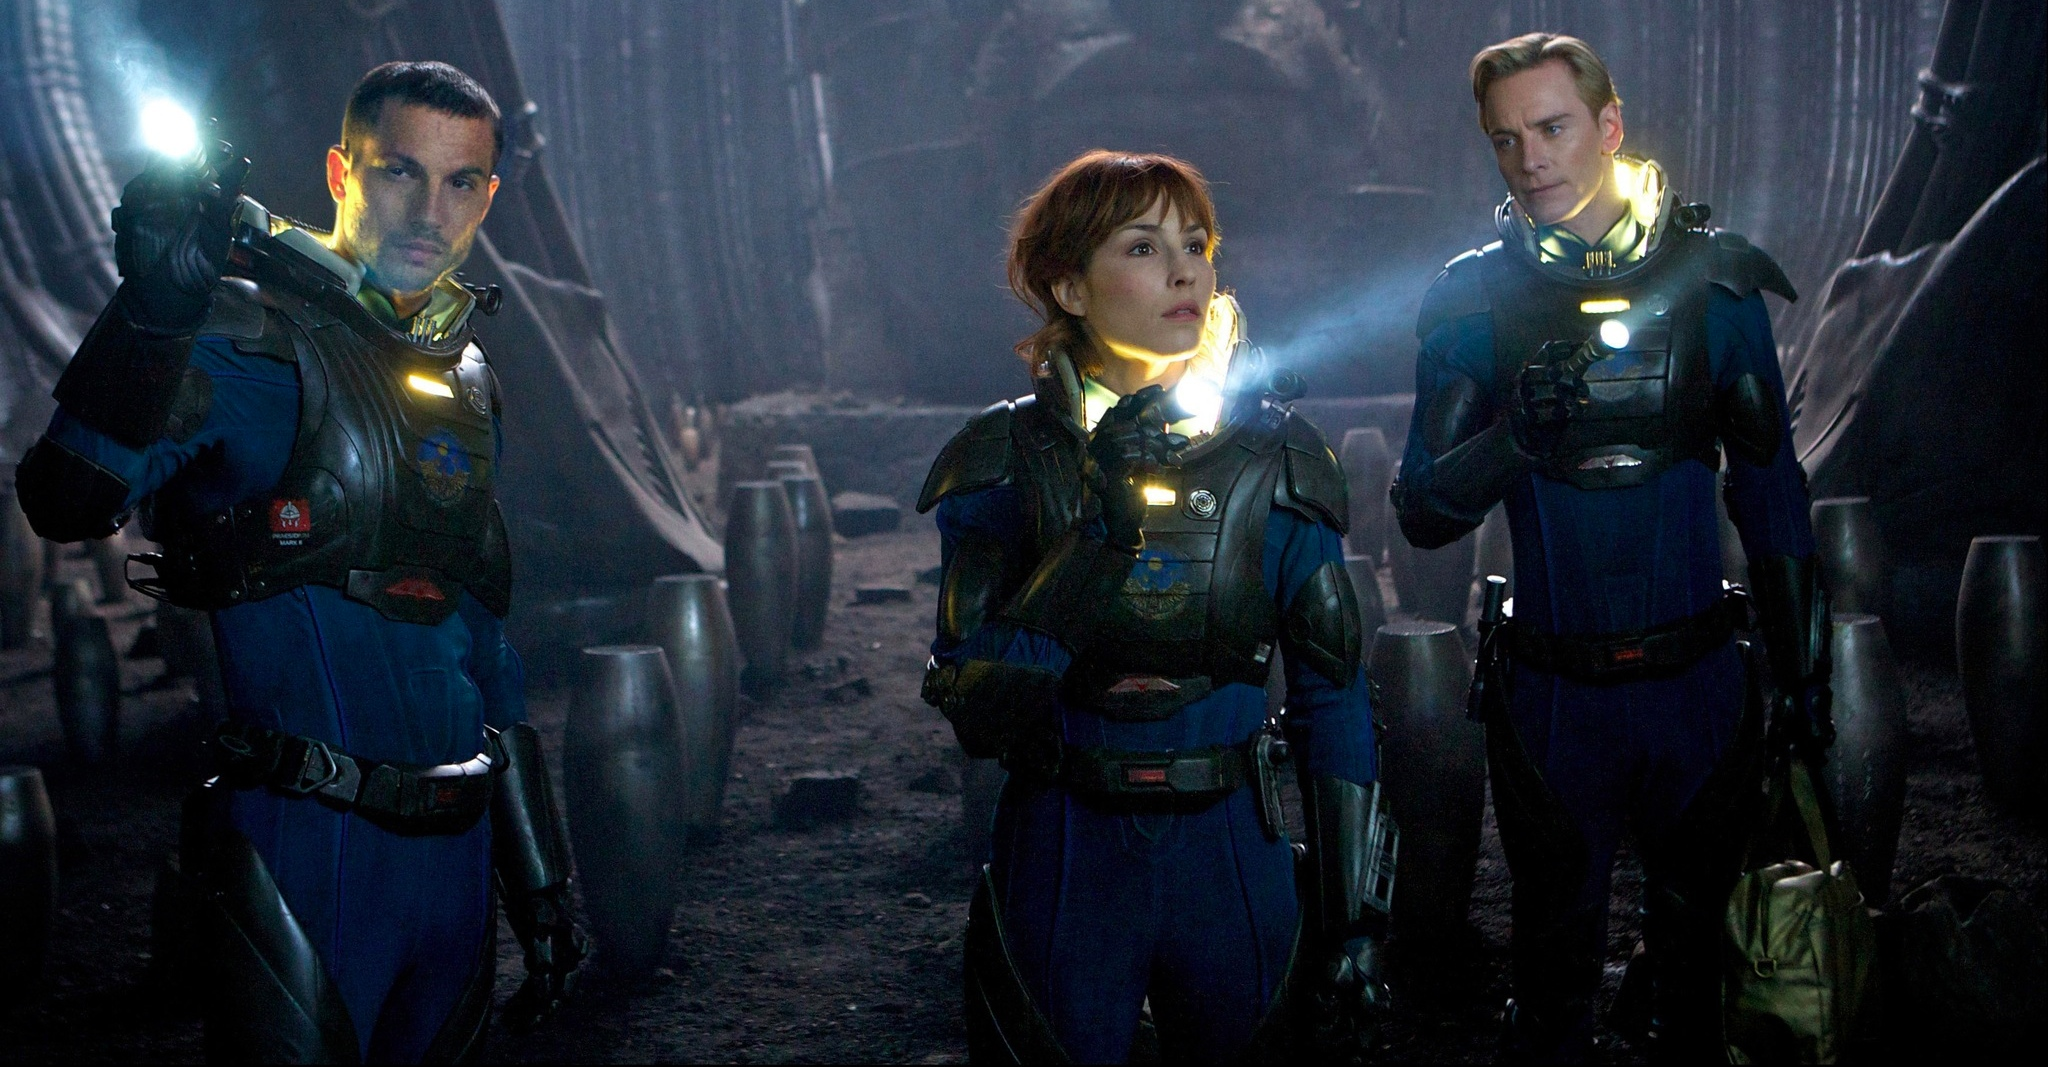 PROM-002 - Logan Marshall-Green, left, Noomi Rapace, and Michael Fassbender explore a planet in the darkest corners of the universe.